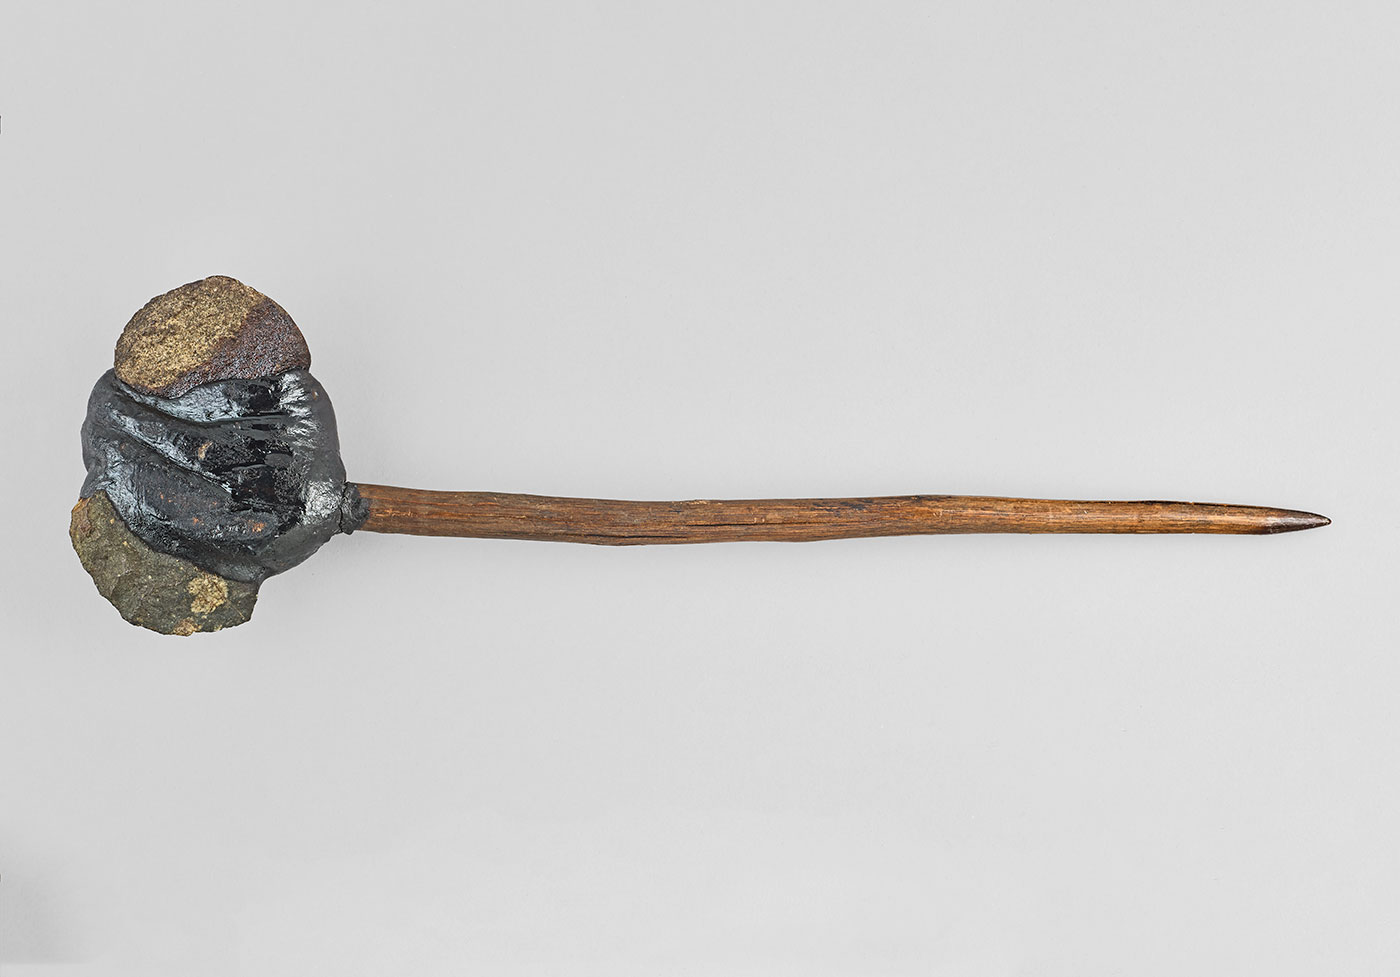 An axe with a tapered wooden handle and stone head with resin. - click to view larger image